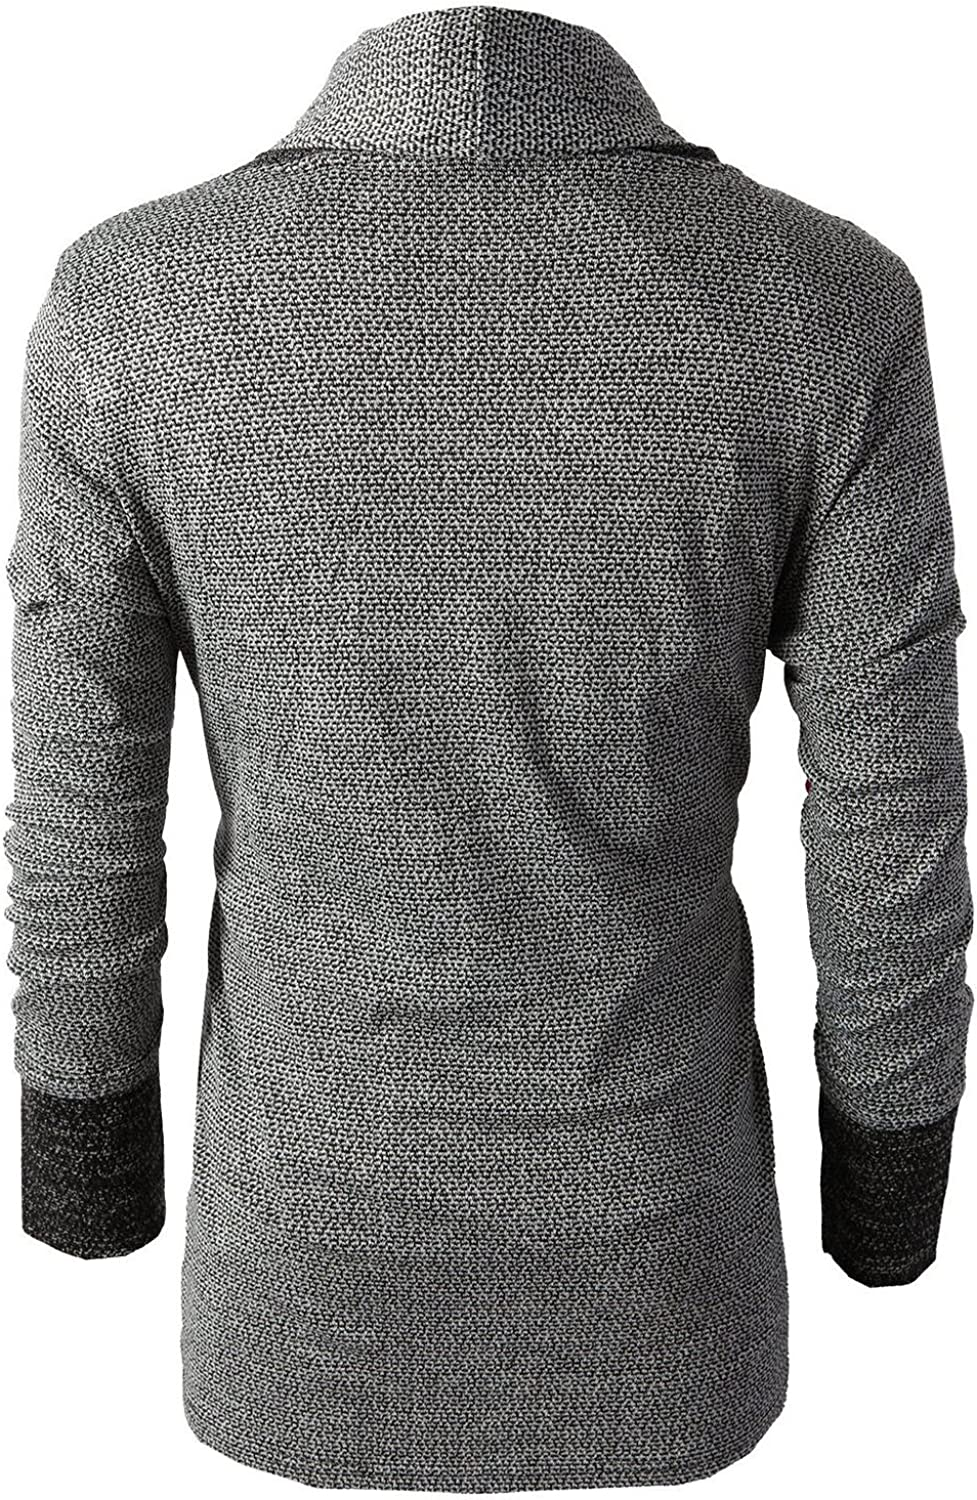 Brinny Men Cardigan Shawl Collared Open Cable Chunky Knited Sweater Placket Long Line